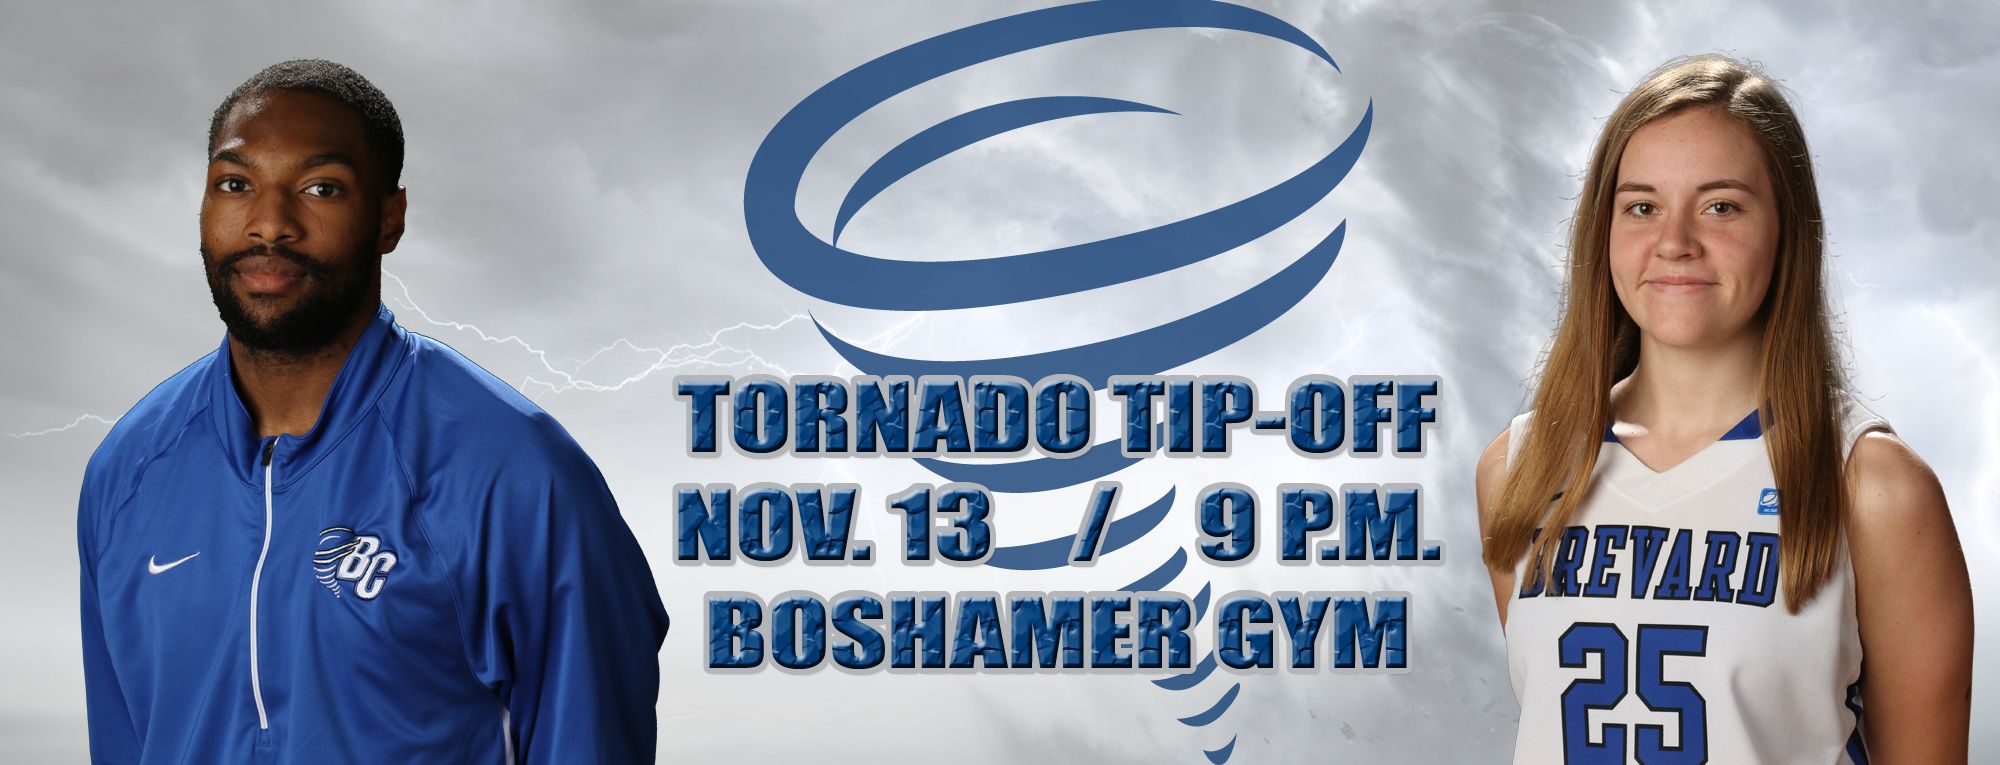 Tornado Tip-Off Set for November 13